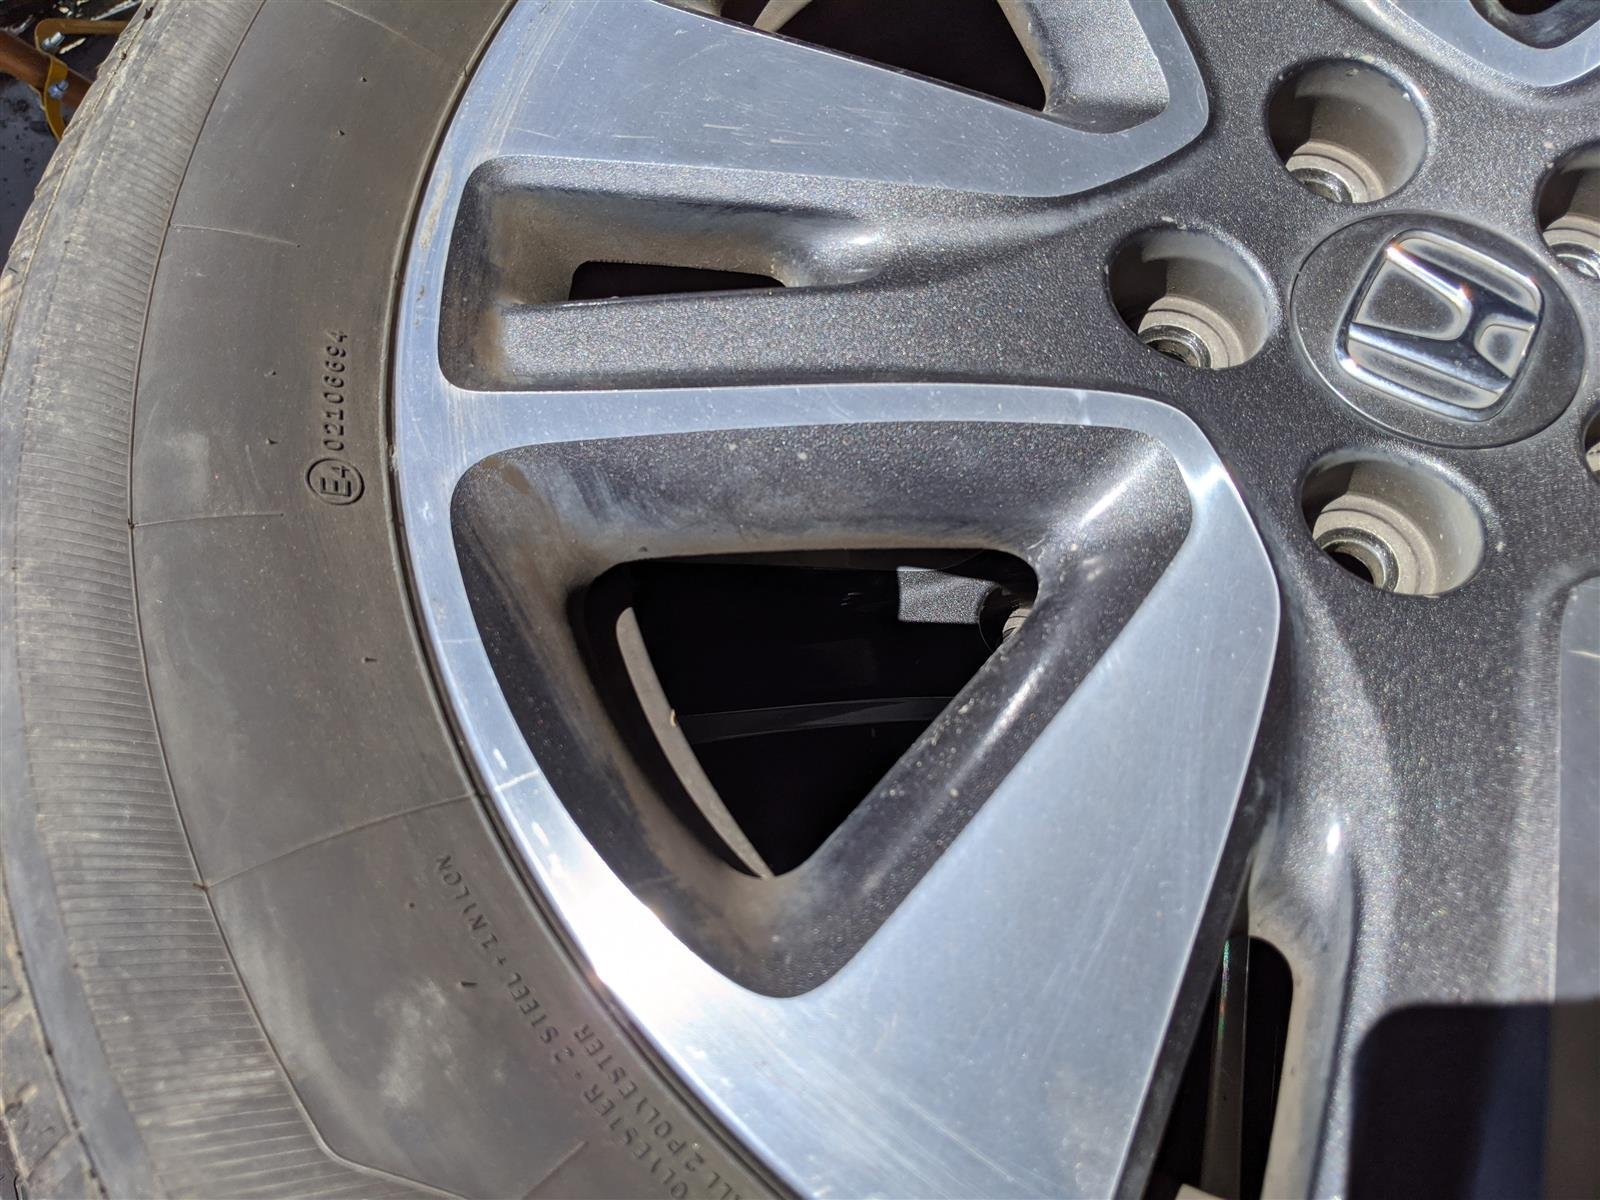 2014 Honda Odyssey Front Driver 18 Inch Rim, Small Scratches Replacement